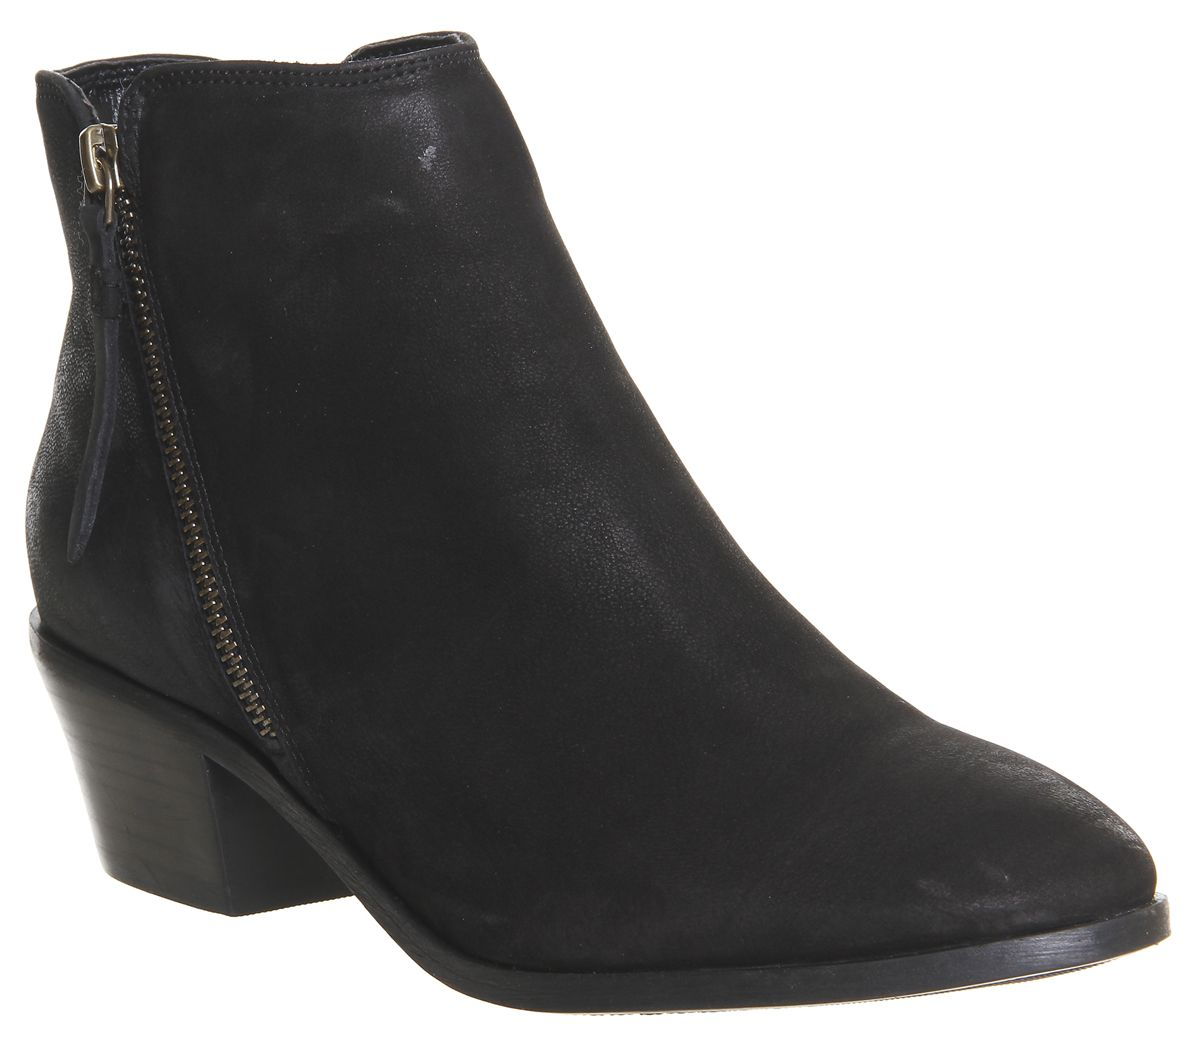 d9fffa81483e1a Office Austin Side Zip Casual Ankle Boots Black Nubuck - Ankle Boots